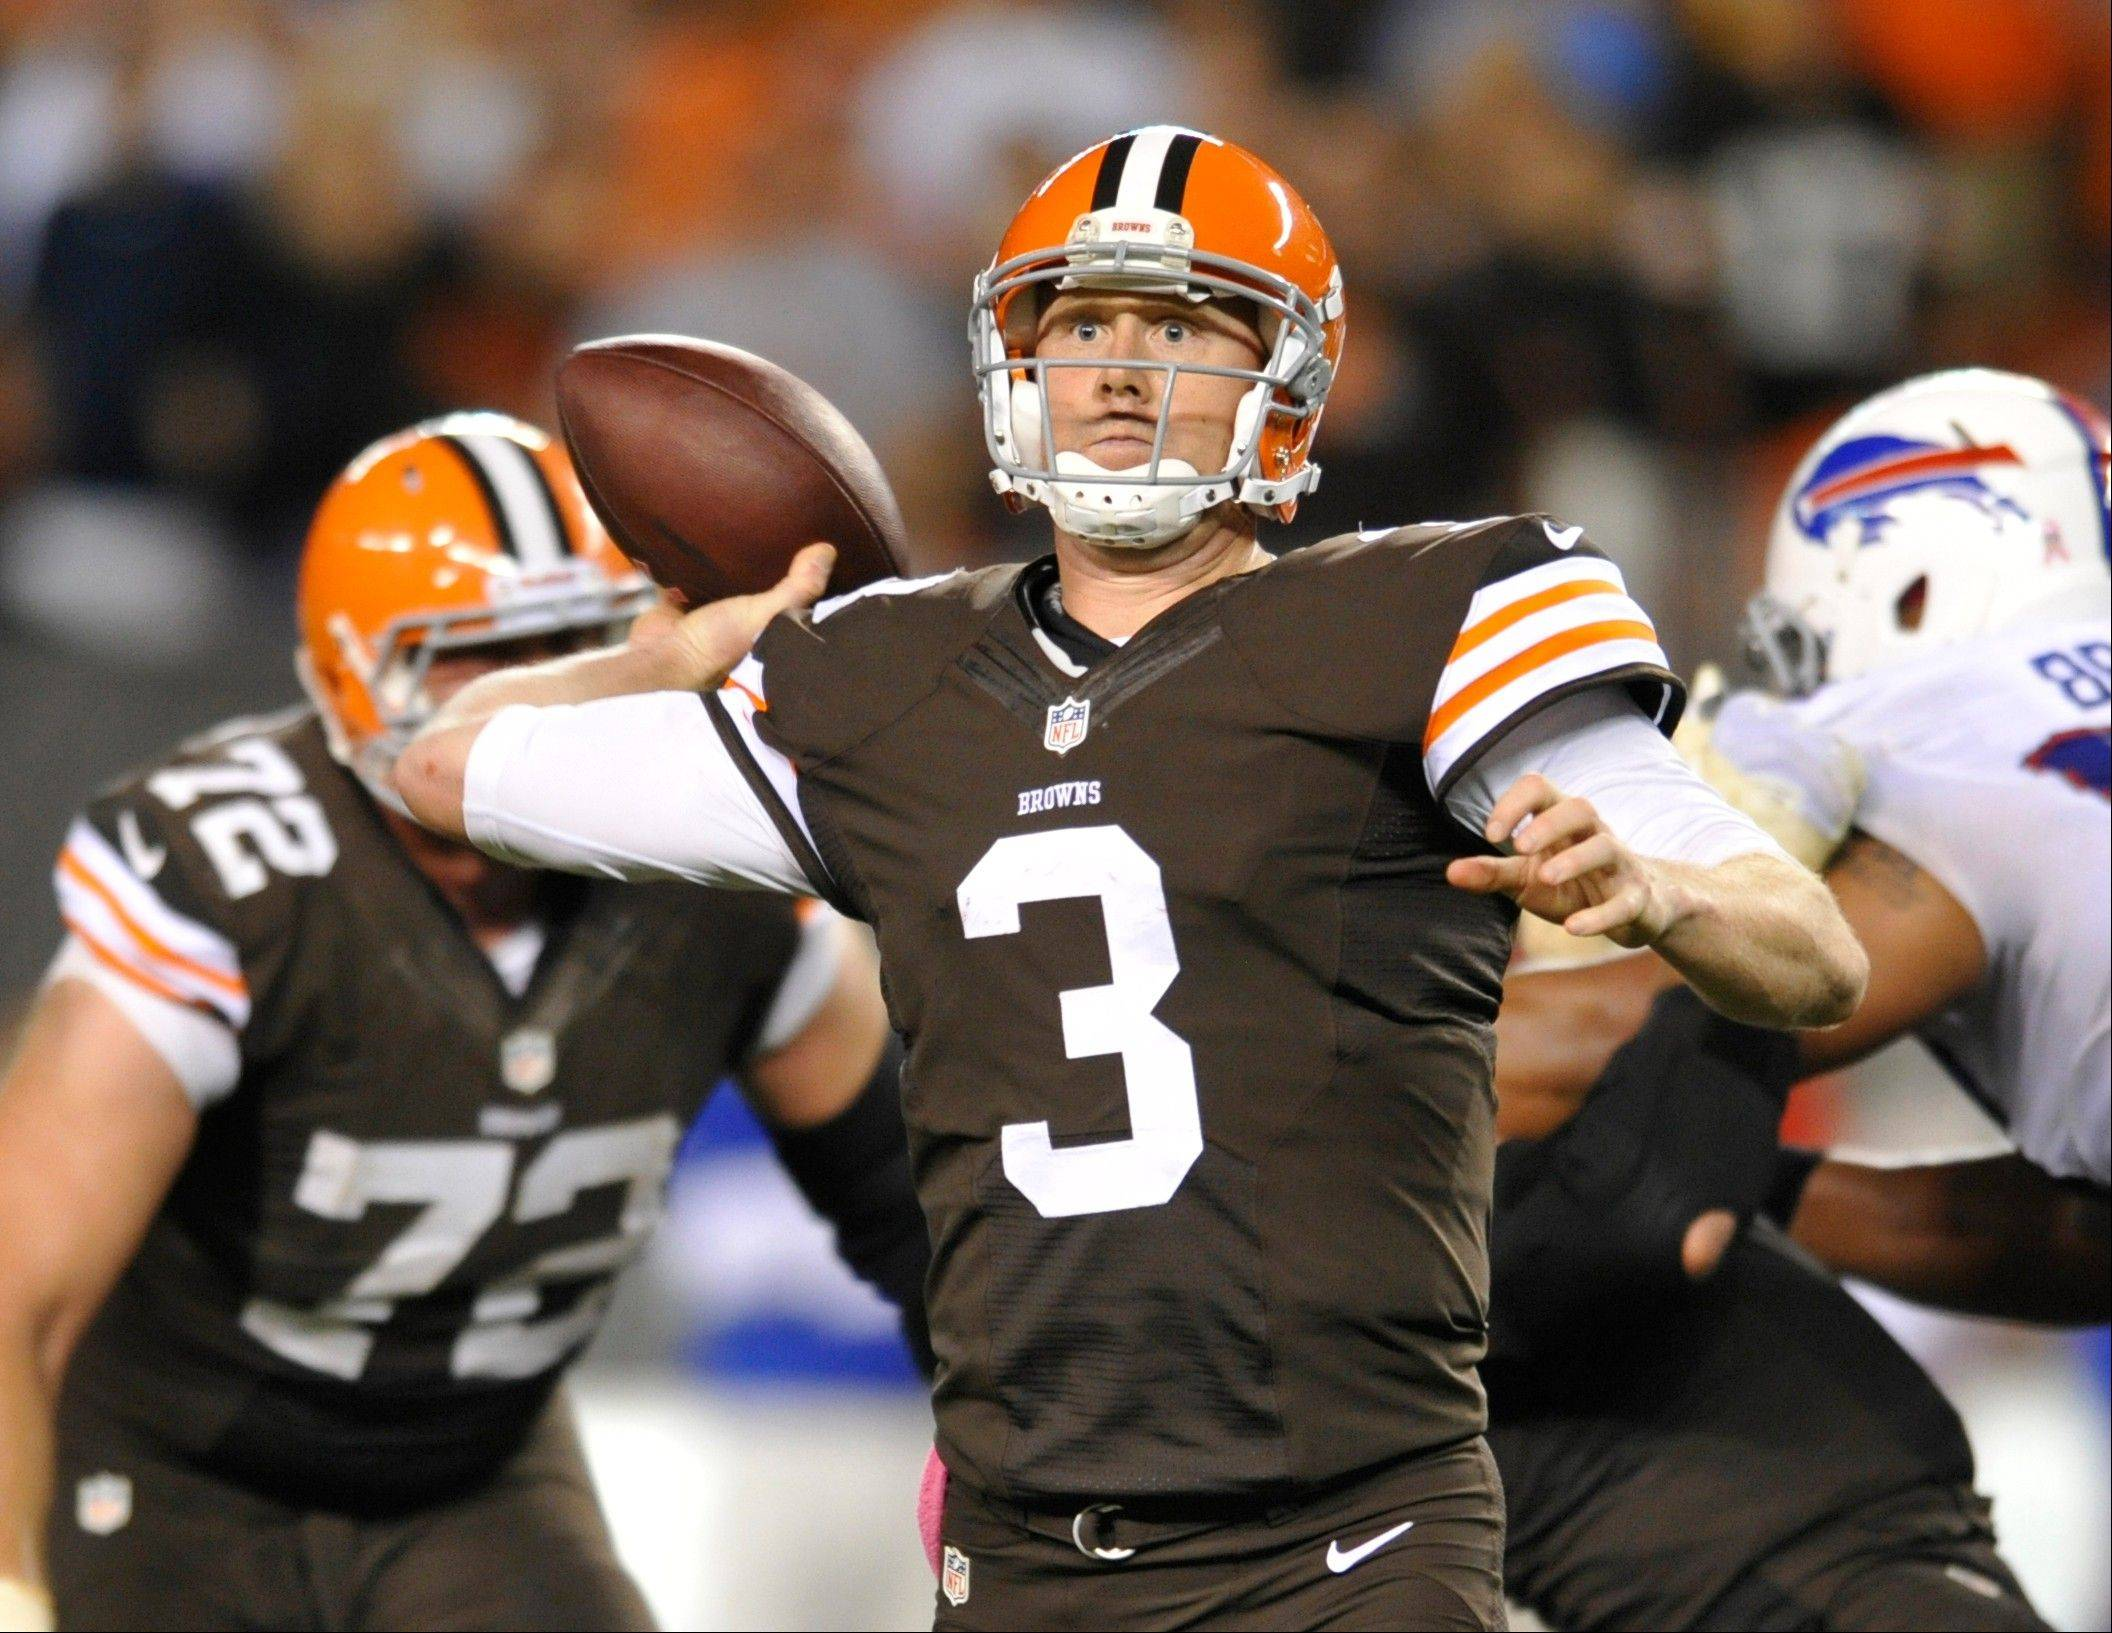 Cleveland Browns quarterback Brandon Weeden passes against the Buffalo Bills in the fourth quarter of an NFL football game Thursday, Oct. 3, 2013, in Cleveland. Weeden took over for starter Brian Hoyer who was injured in the first quarter.